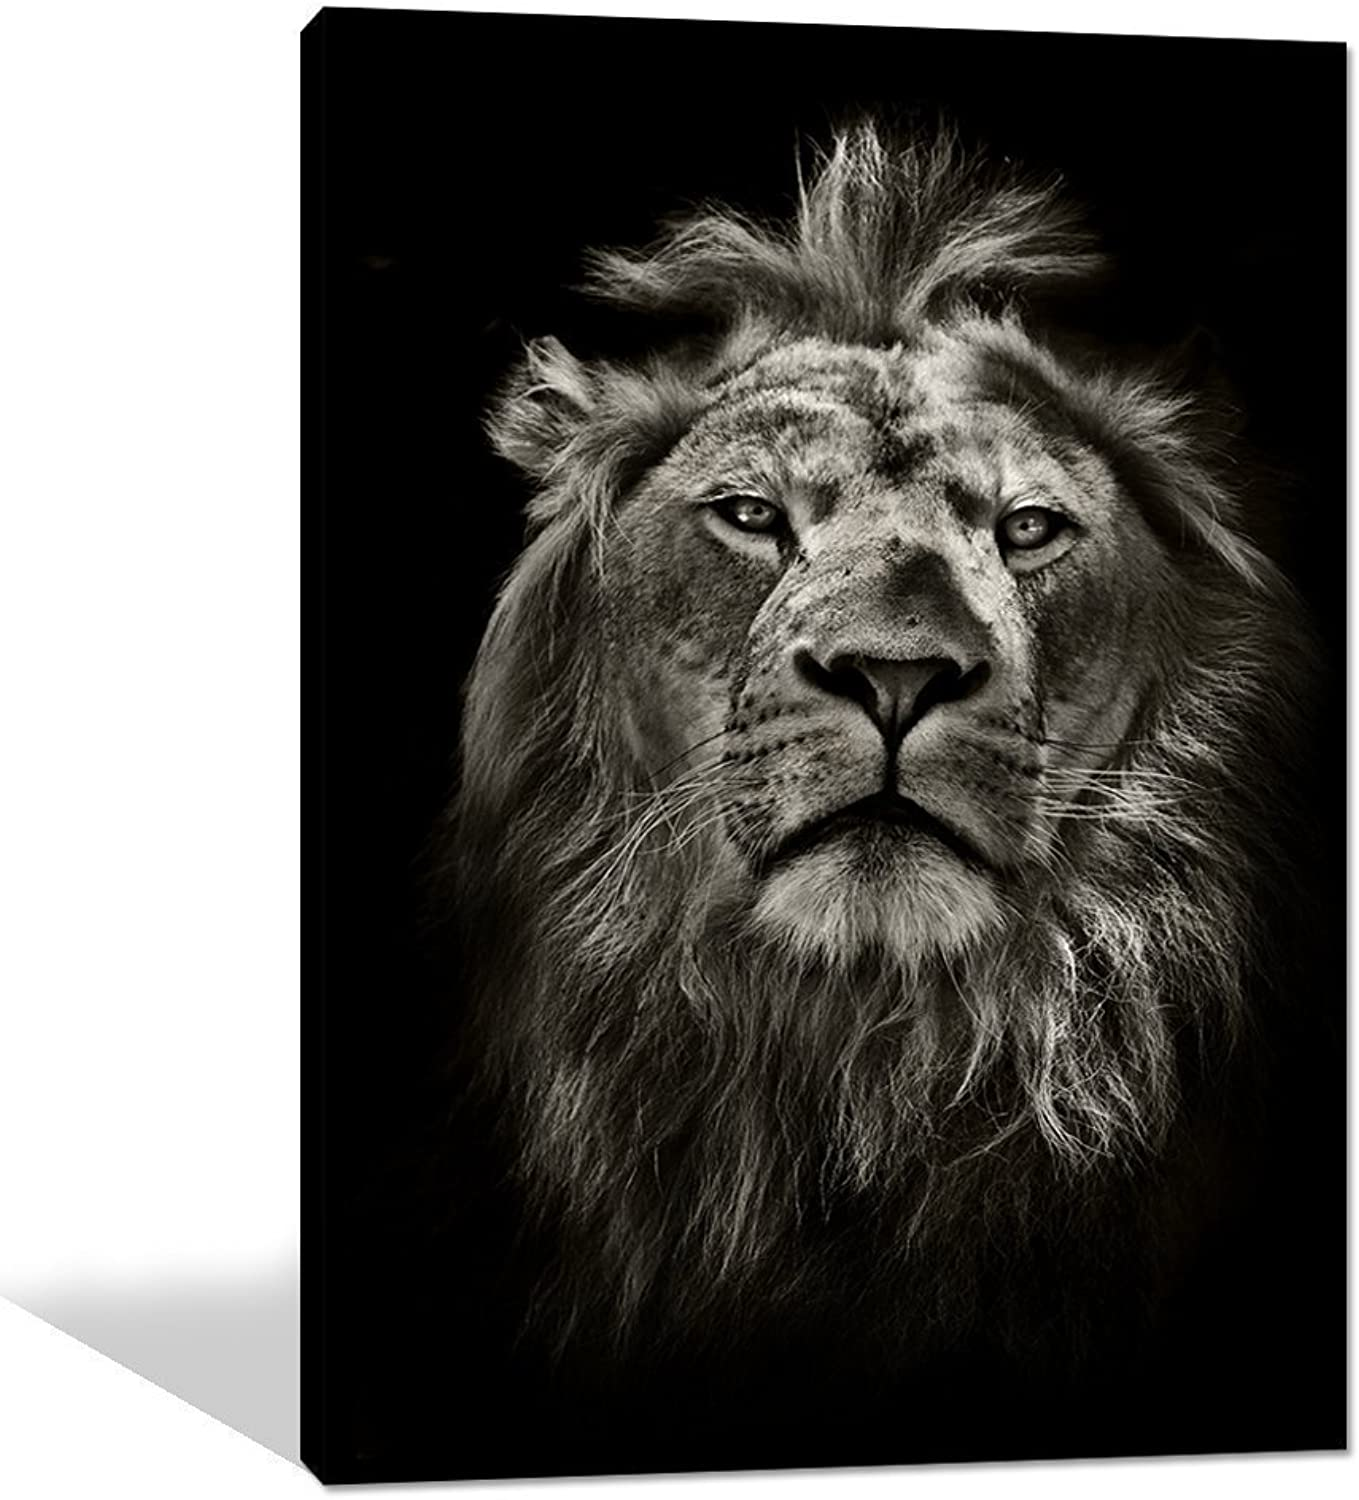 Yatsen Bridge Global Artwork Printed Posters and Prints Black White Animal Lion Picture Wall Art on Canvas for Living Room Home Decor Stretched Ready to Hang (24 x 32 Inch)